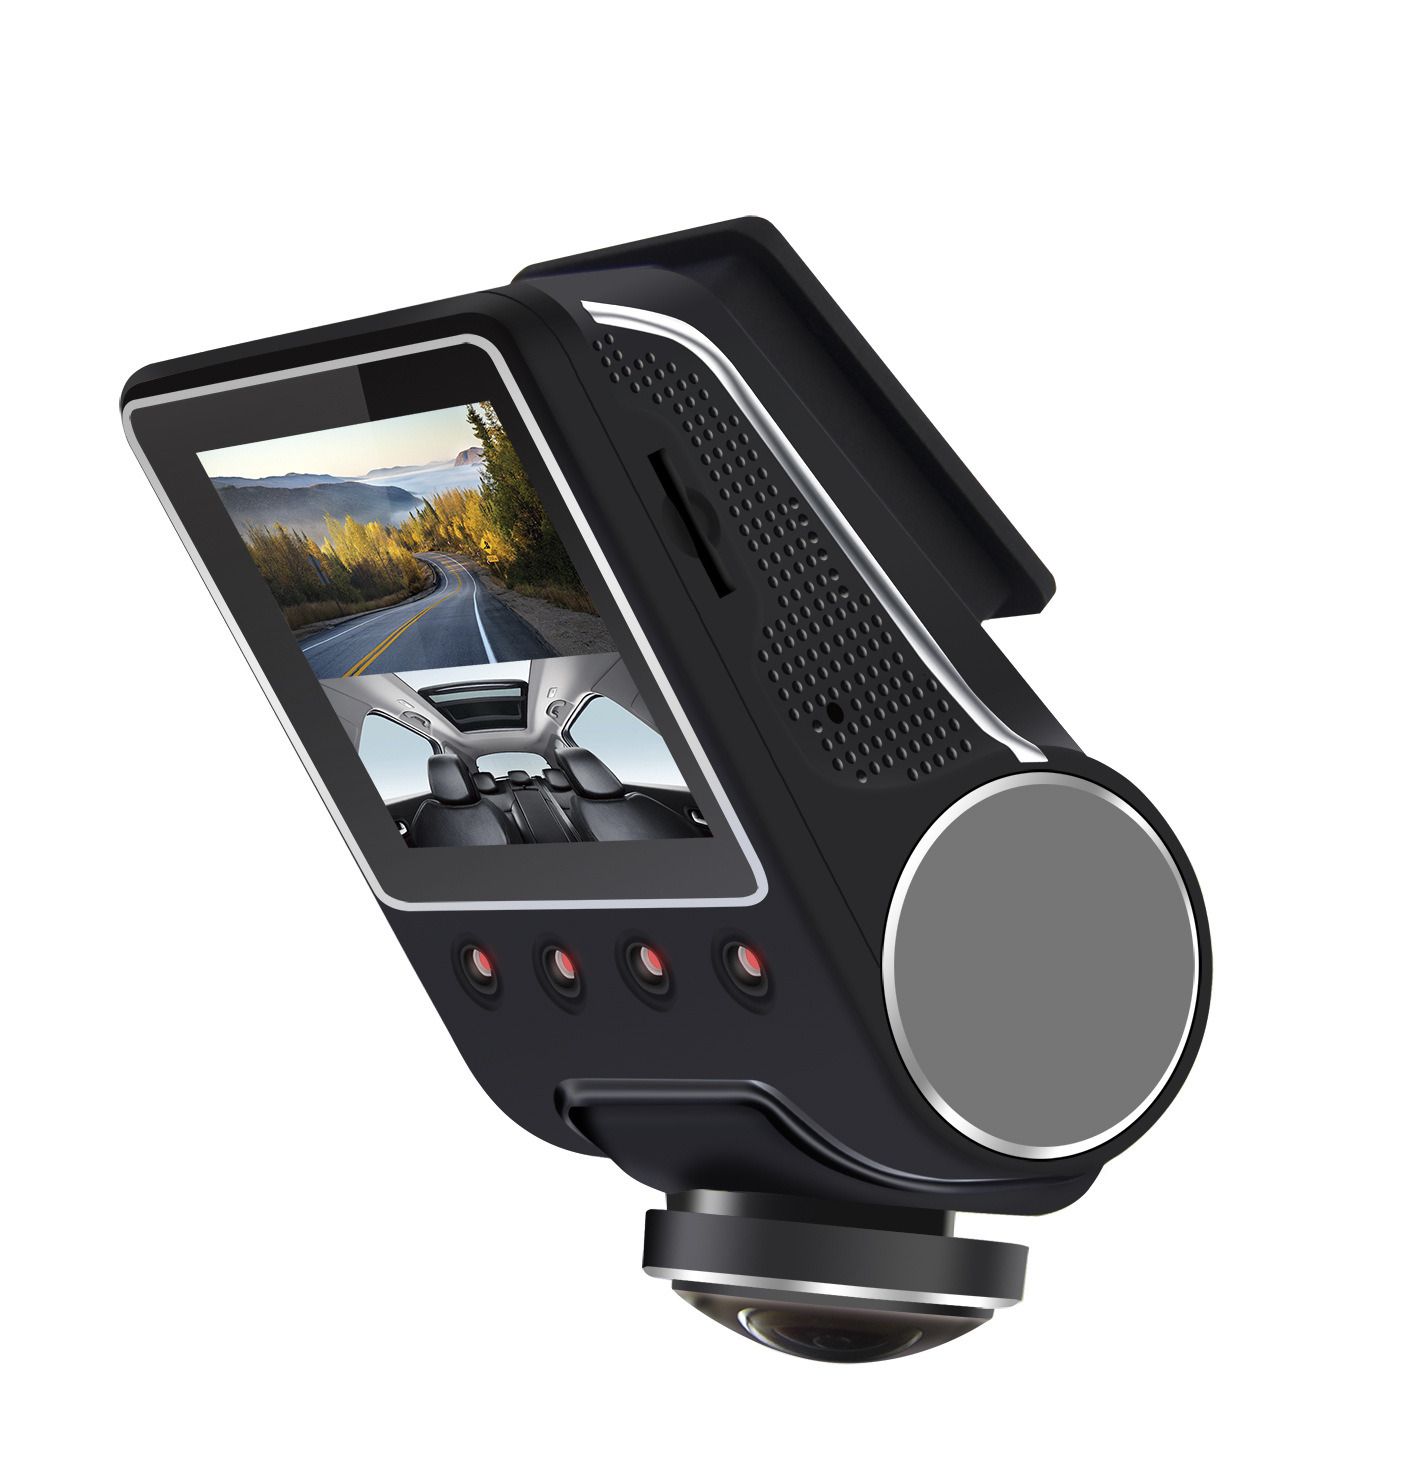 360 Degree Panoramic View Recorder Hidden HD 1080P Night Vision Wide-Angle Car DVR Camcorder with WiFi